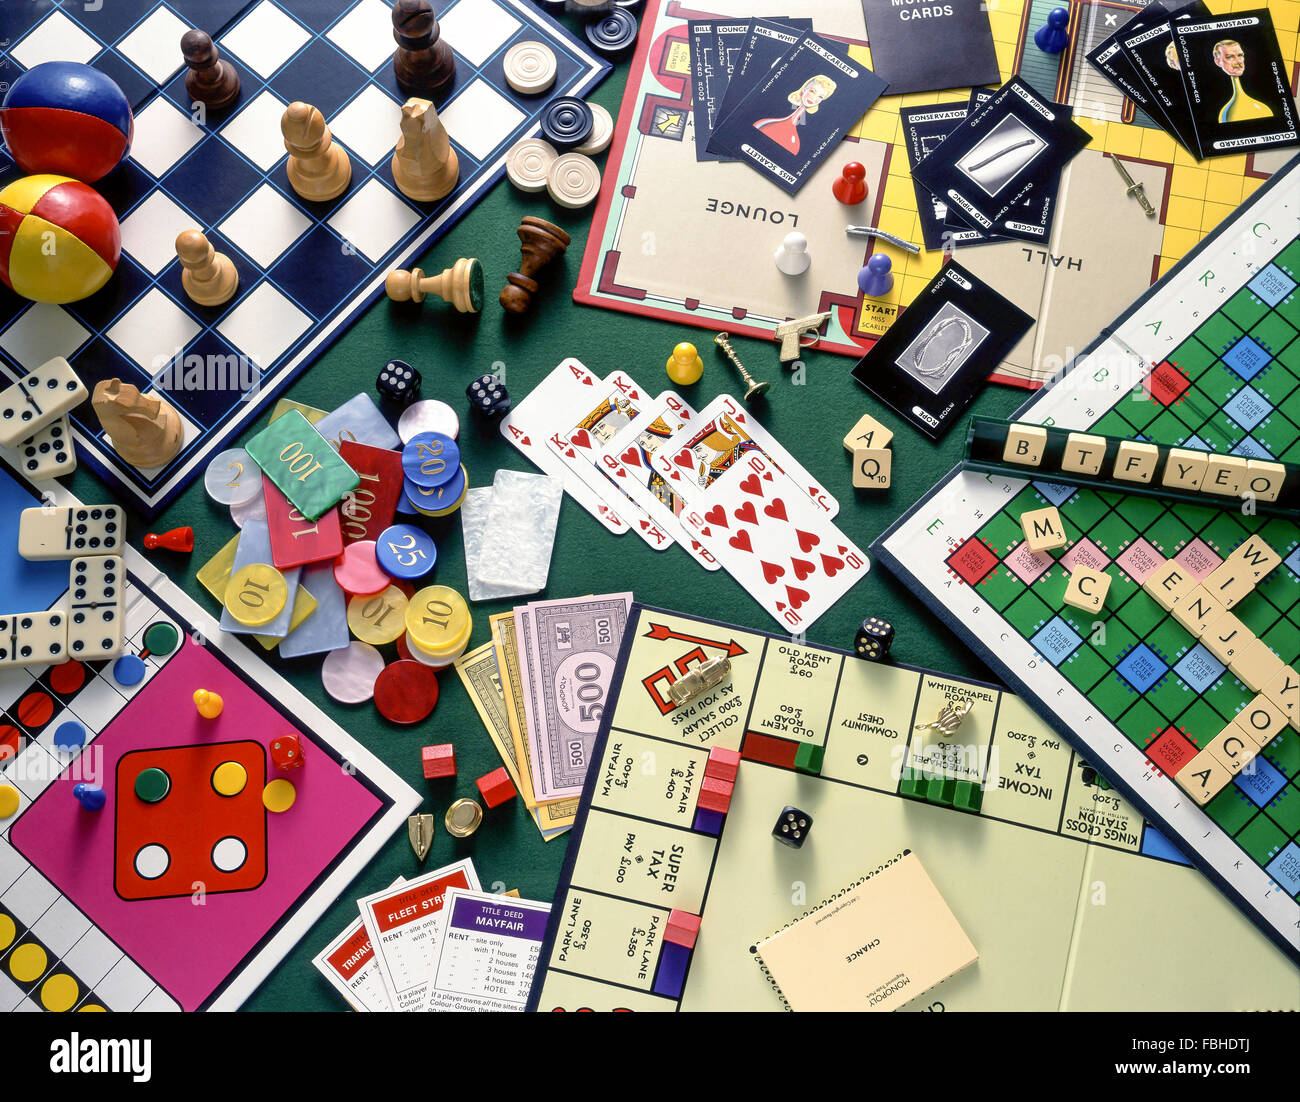 Still-life selection of board games (Monopoly, Chess, Cluedo, Scrabble) with playing cards and gambling chips - Stock Image